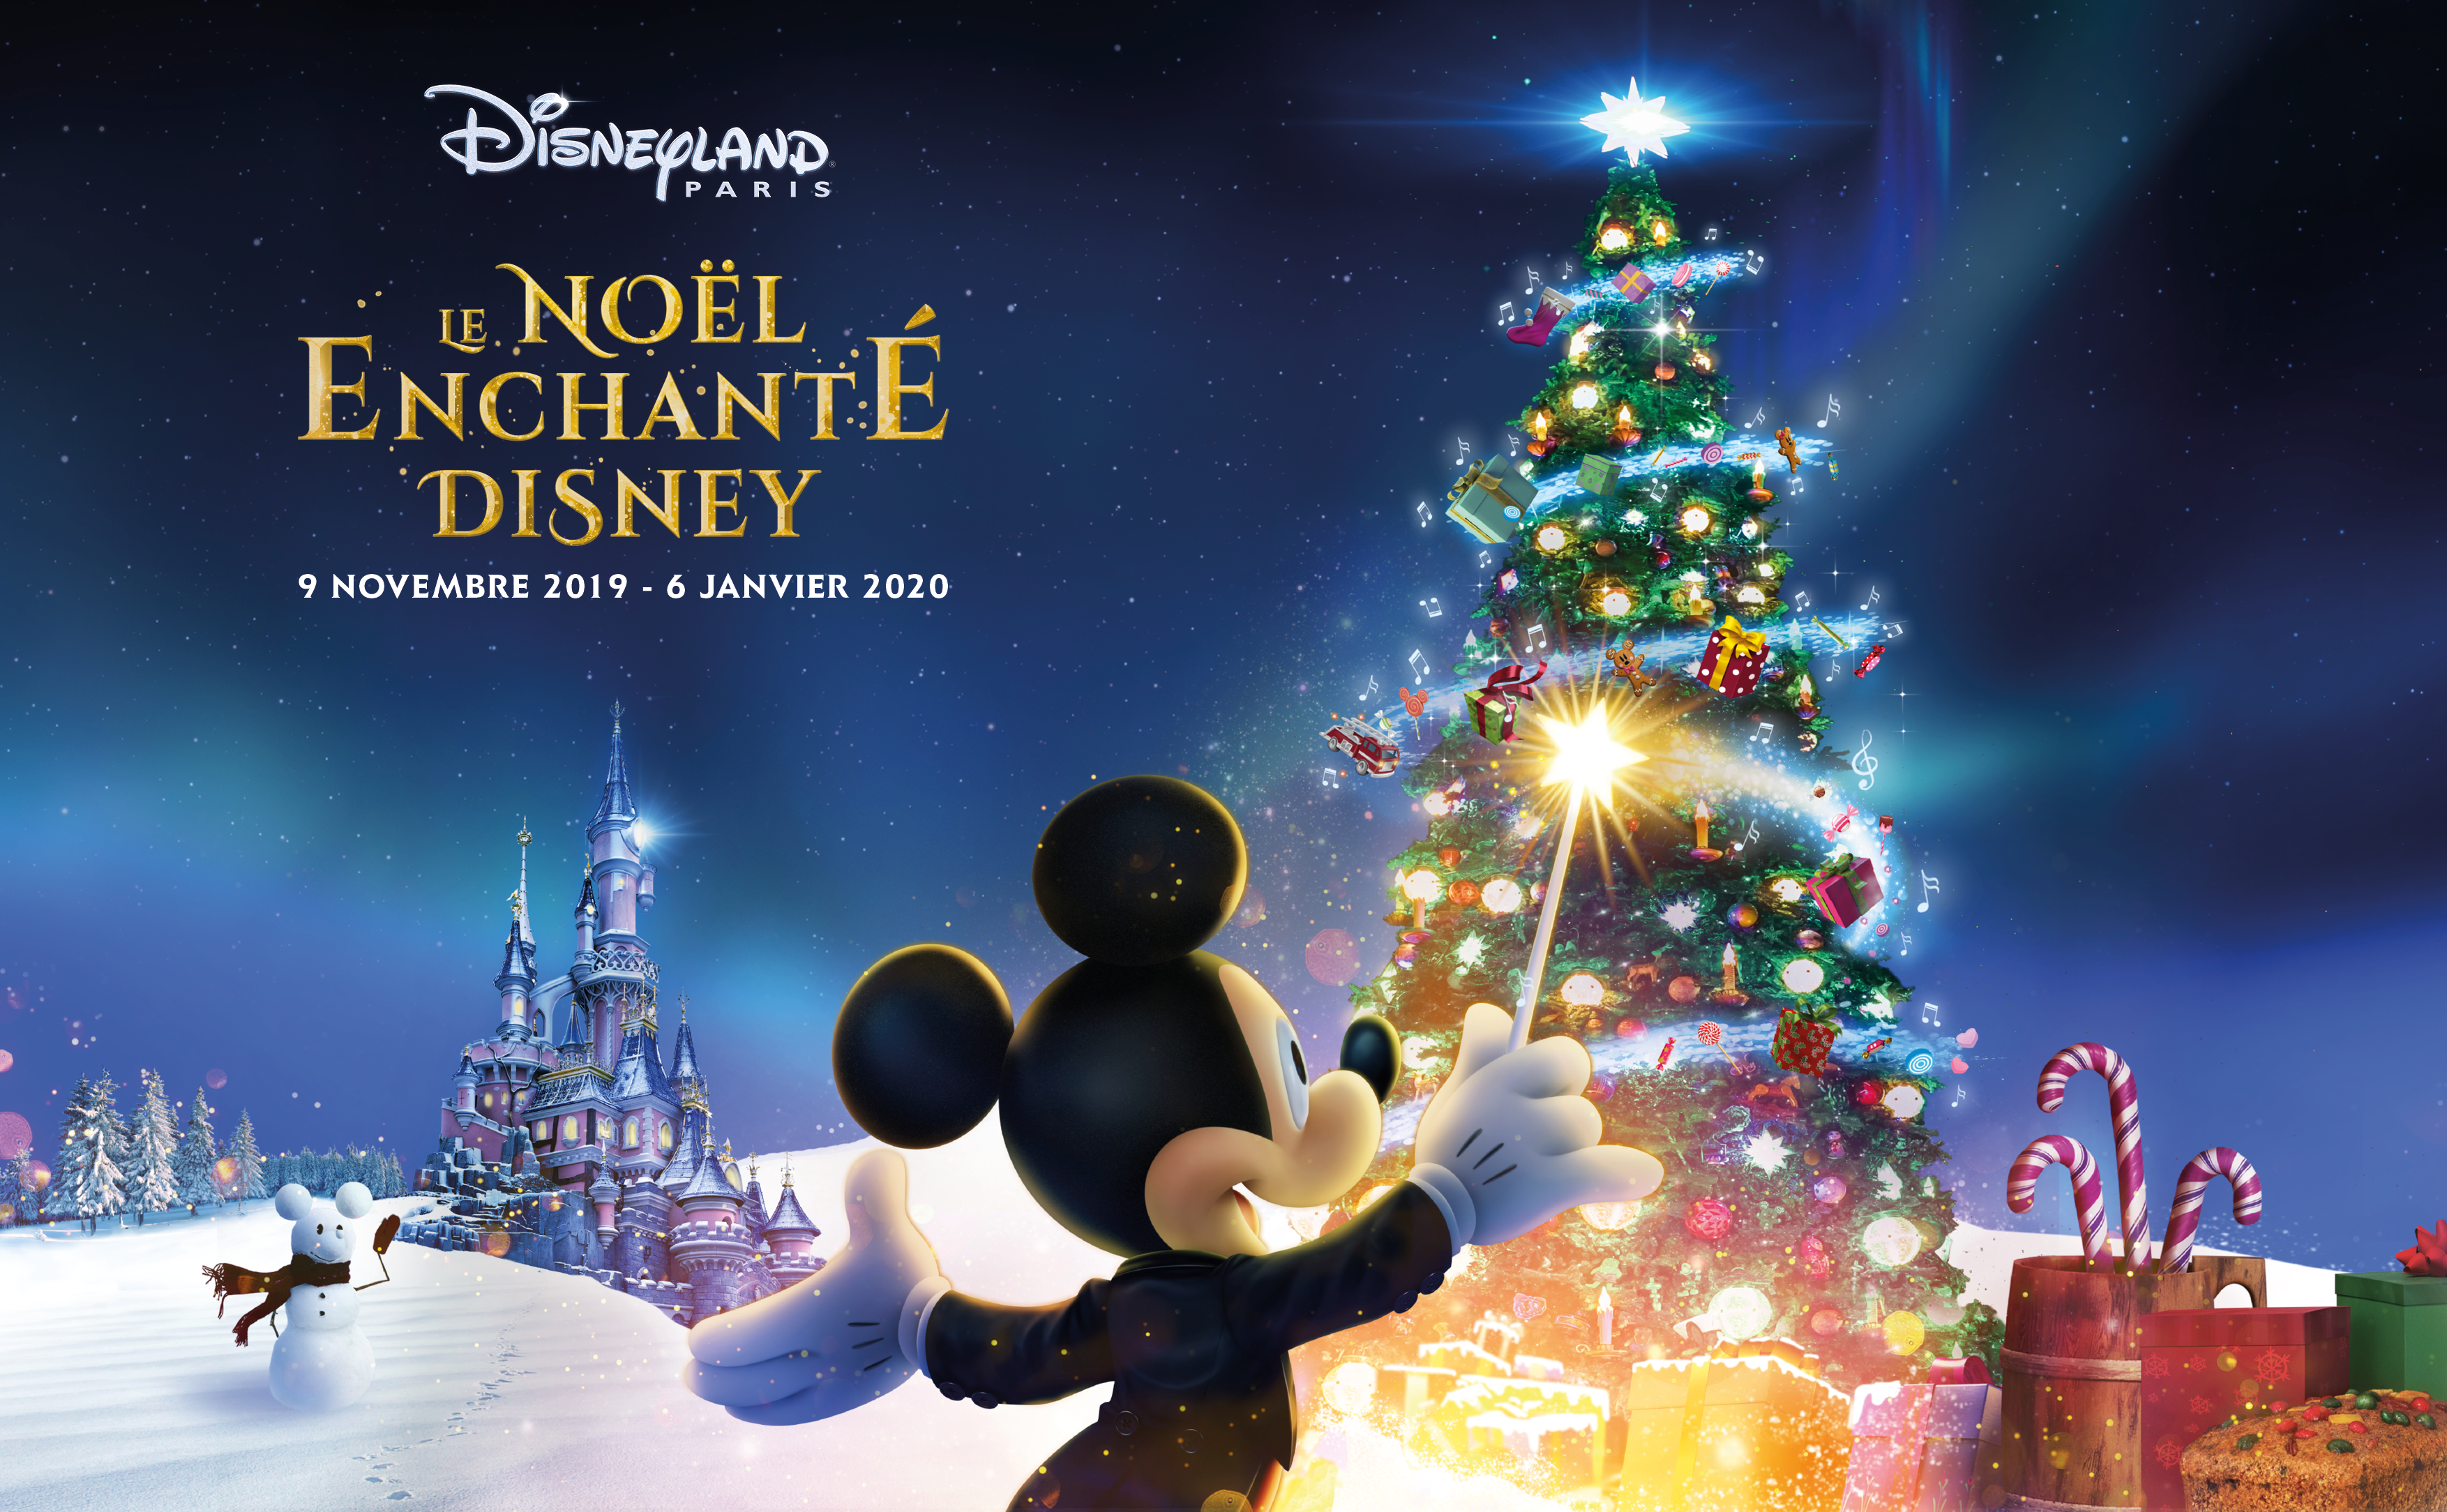 Noël Enchanté à Disneyland Paris 2019